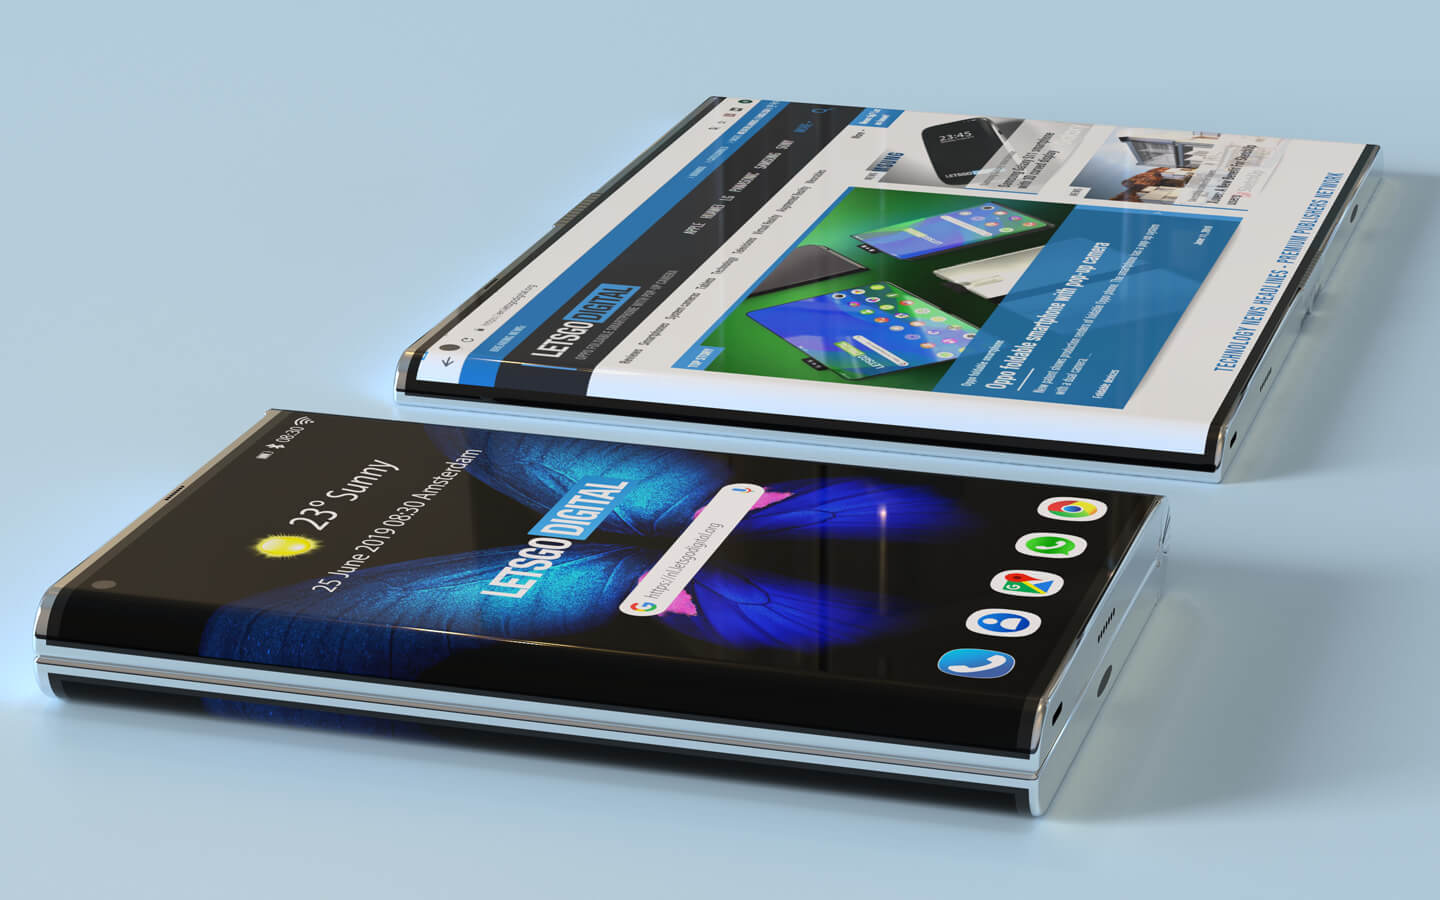 Samsung's own new take on the Samsung Galaxy Fold features a gorgeous edge display 3